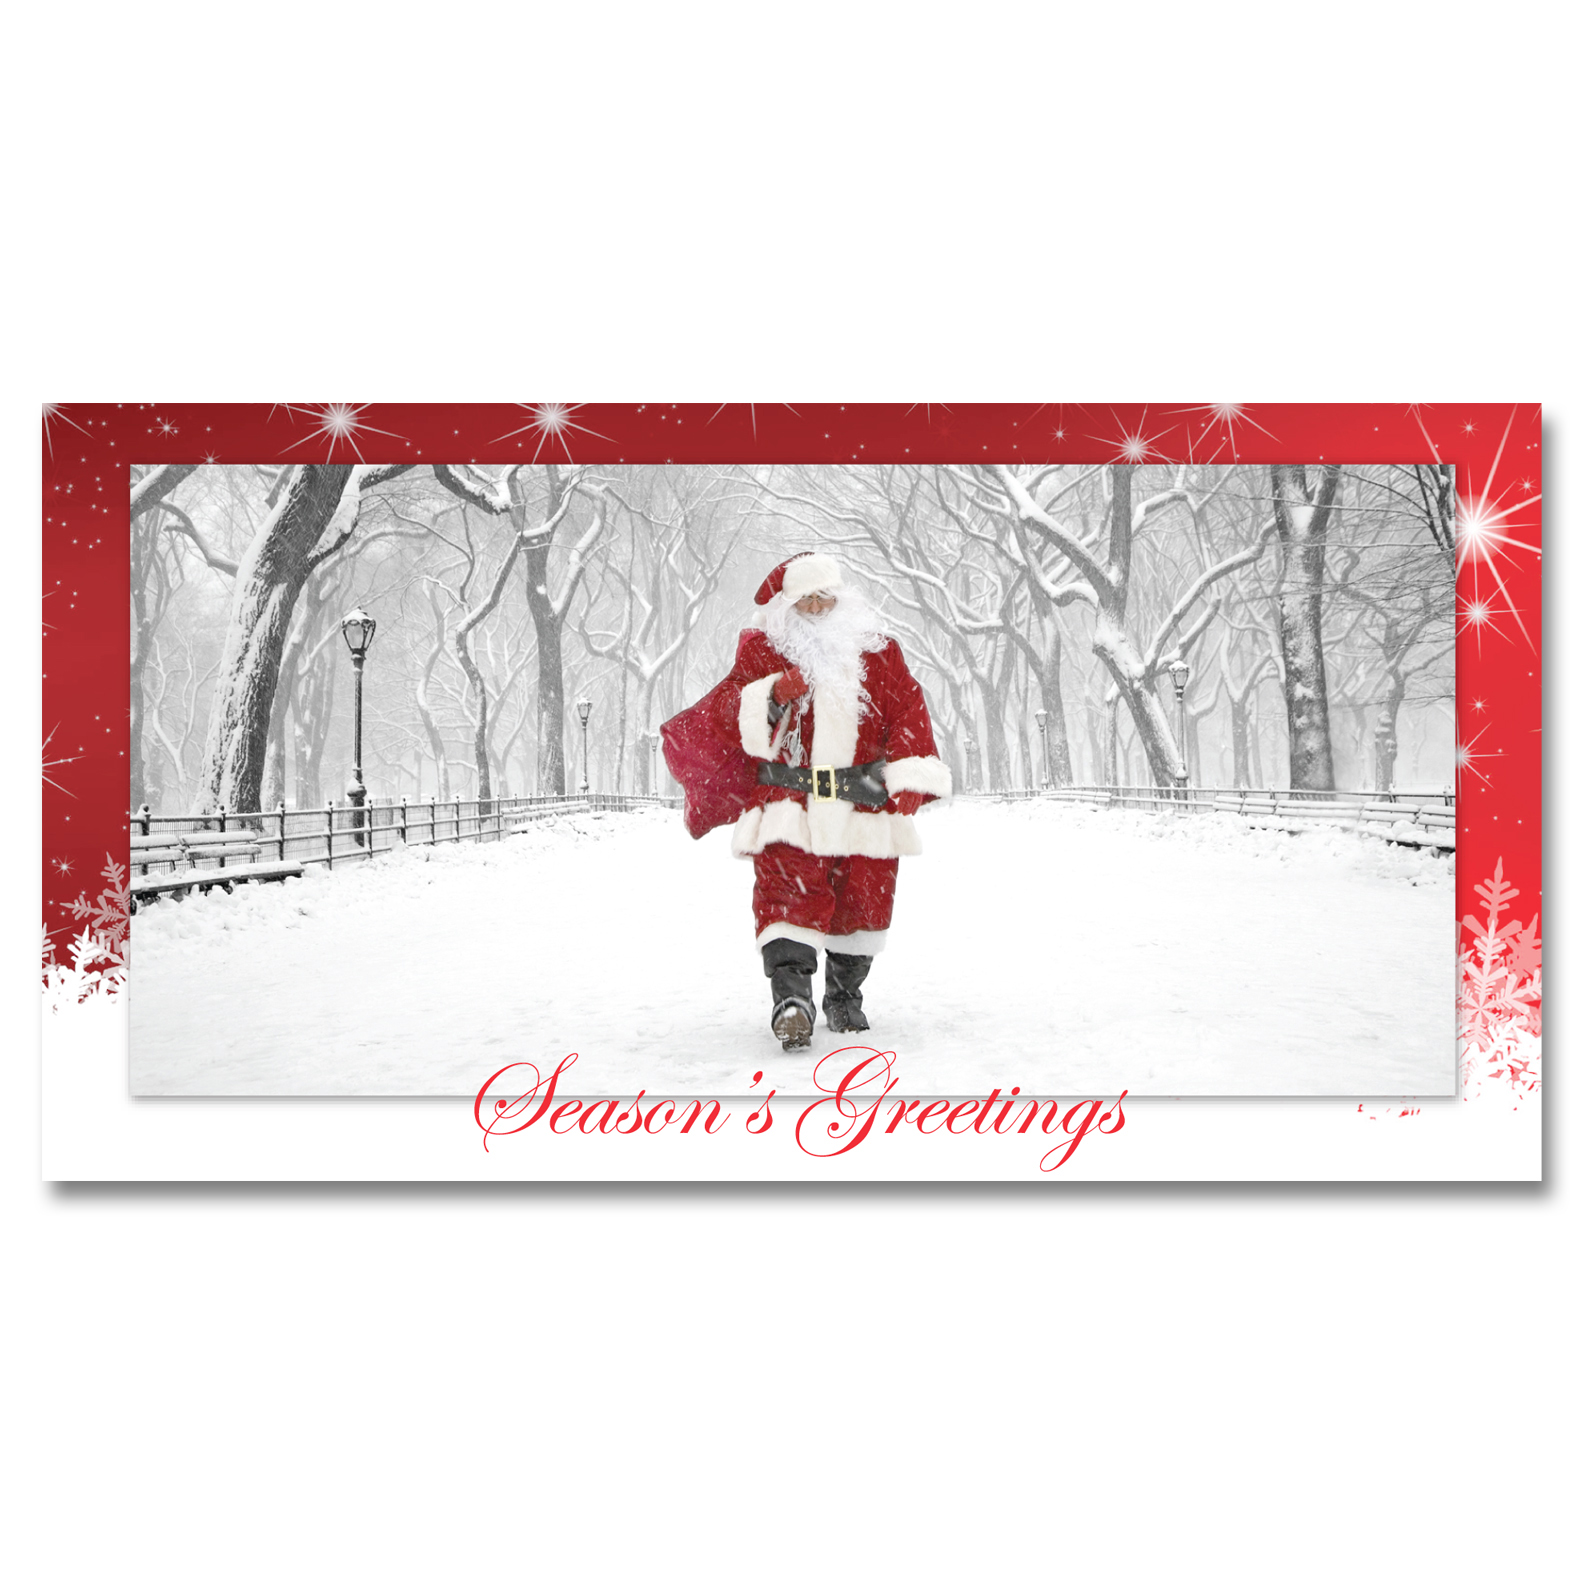 NY Christmas Money Cards Holders – Santa Walking on Poet Walk in Central Park New York –  Set of 6